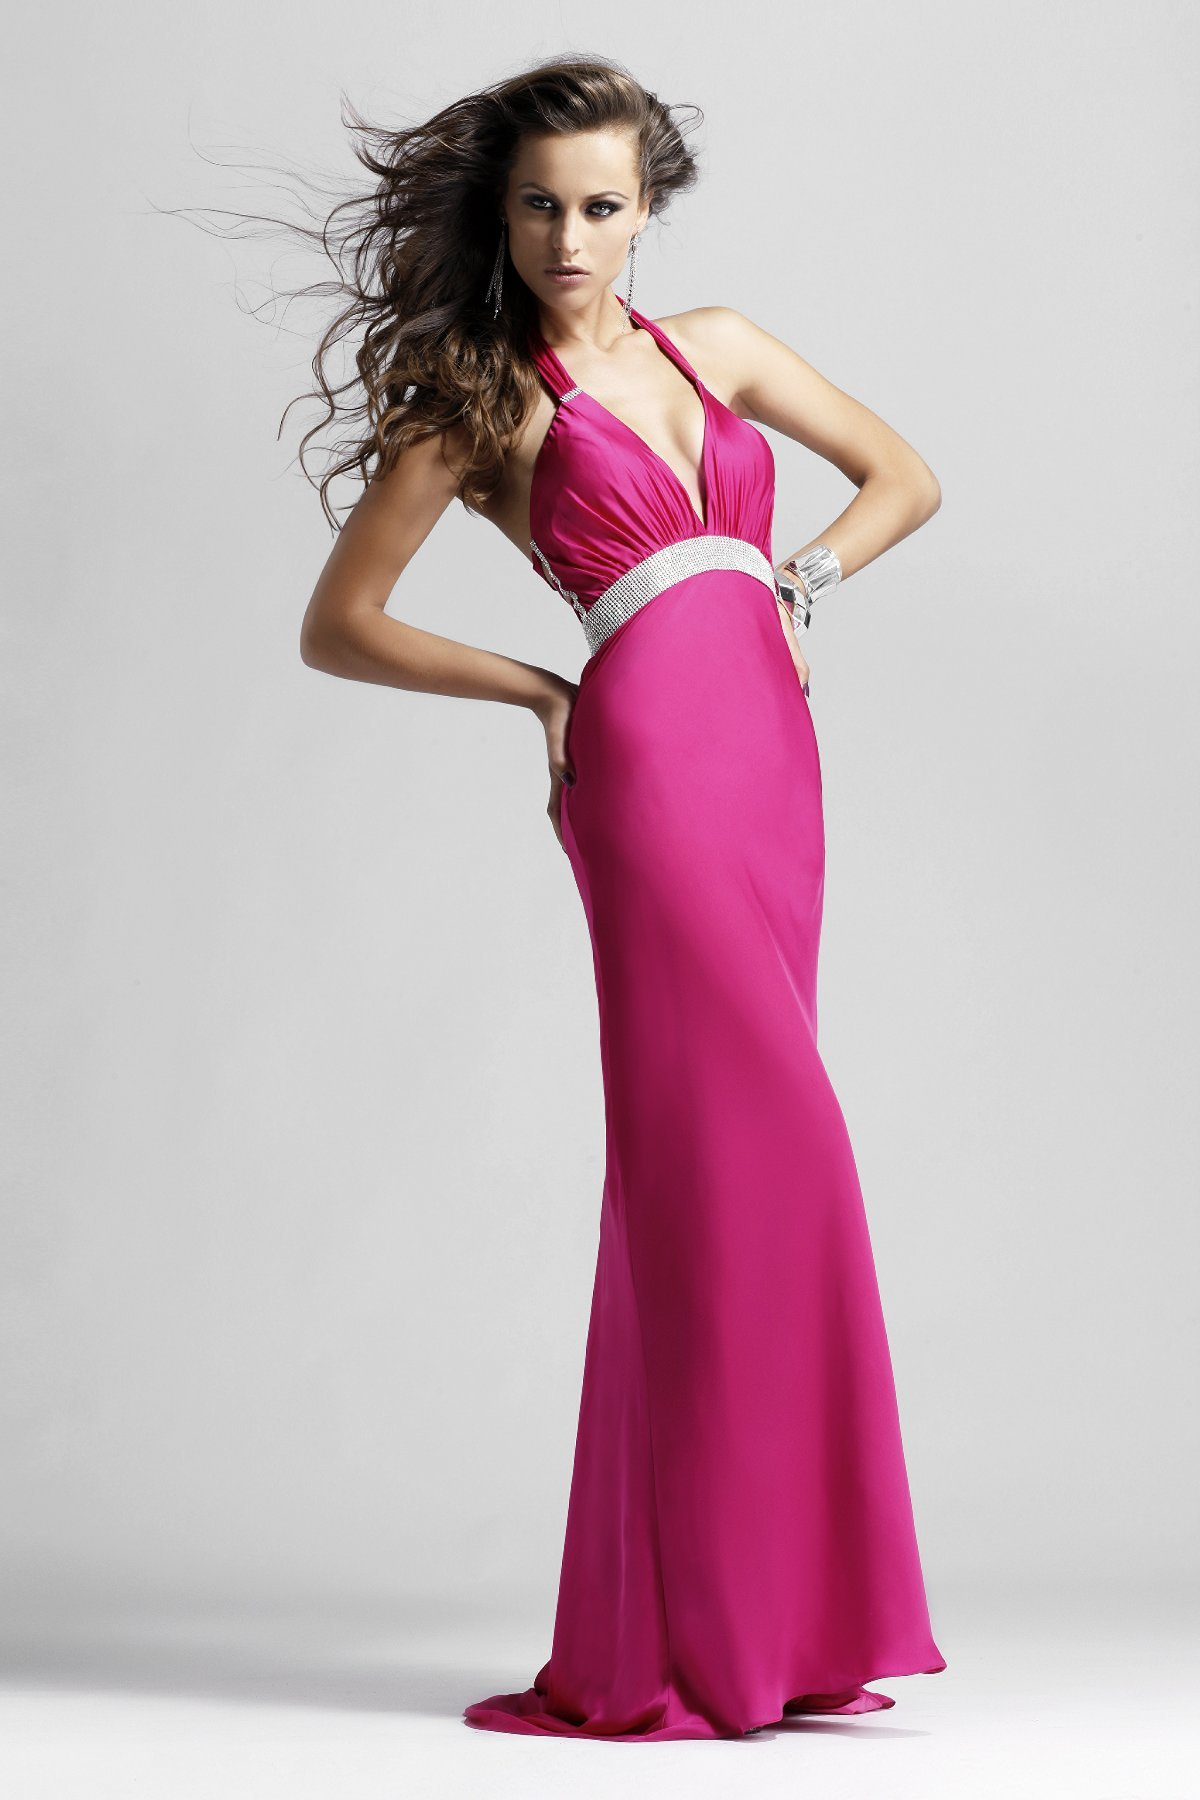 Seductive and Elegant Evening Gowns